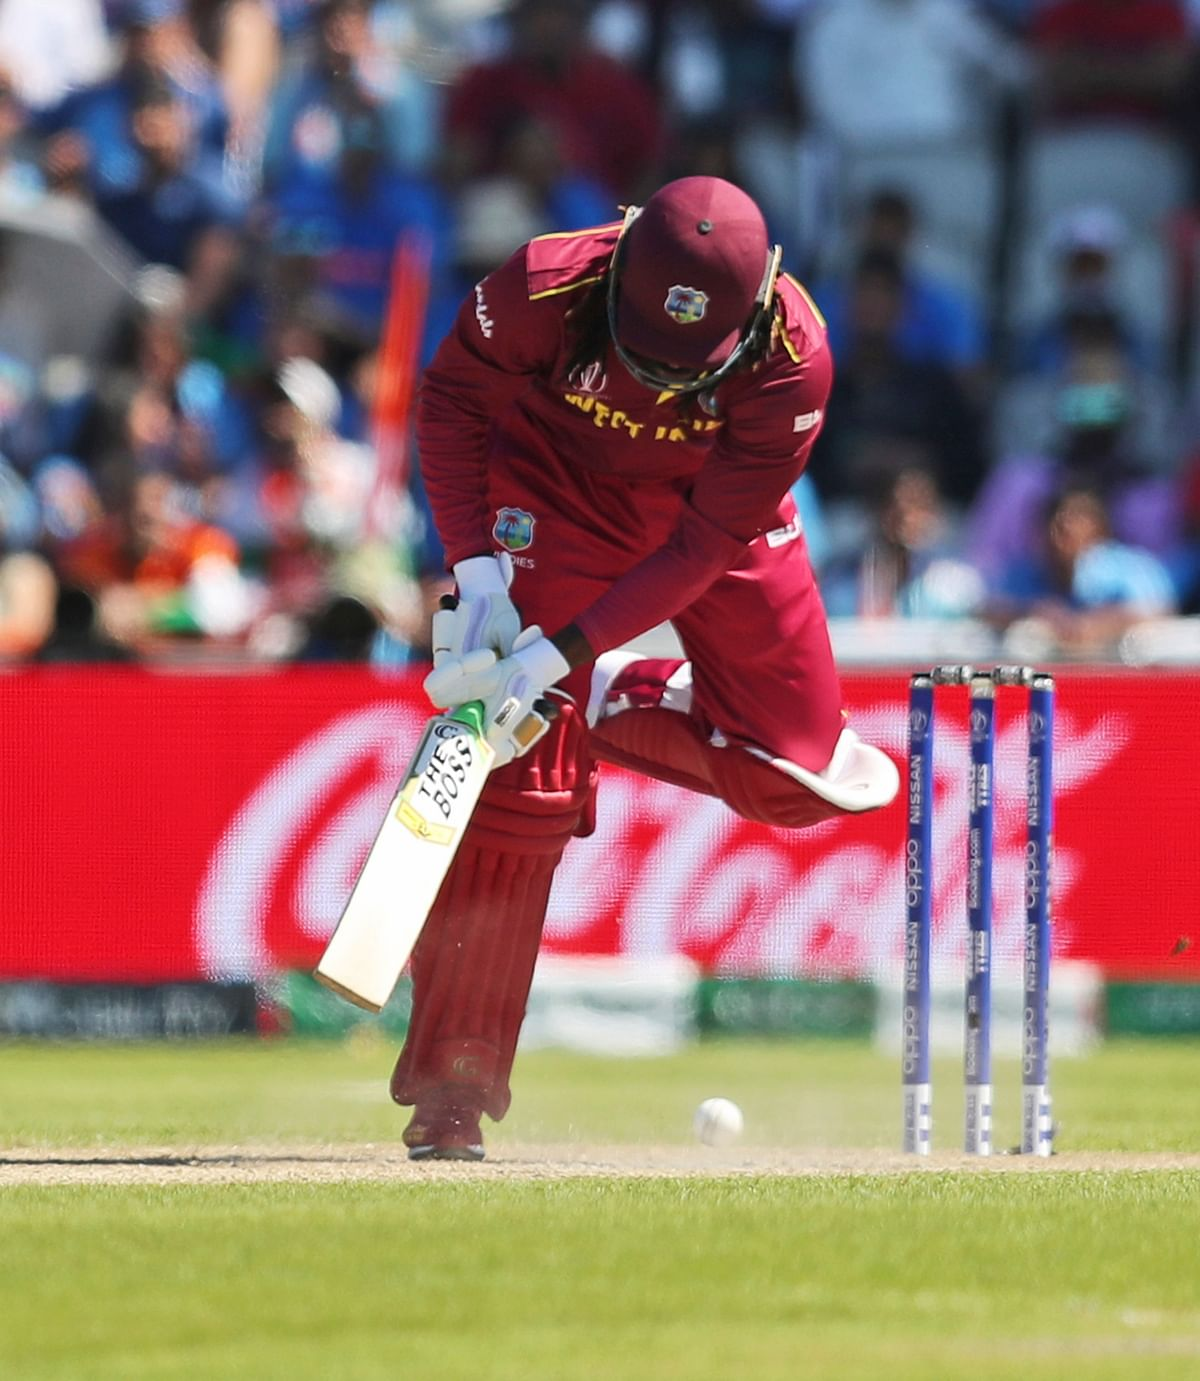 West Indies' Chris Gayle bats during the Cricket World Cup match between India and West Indies at Old Trafford.